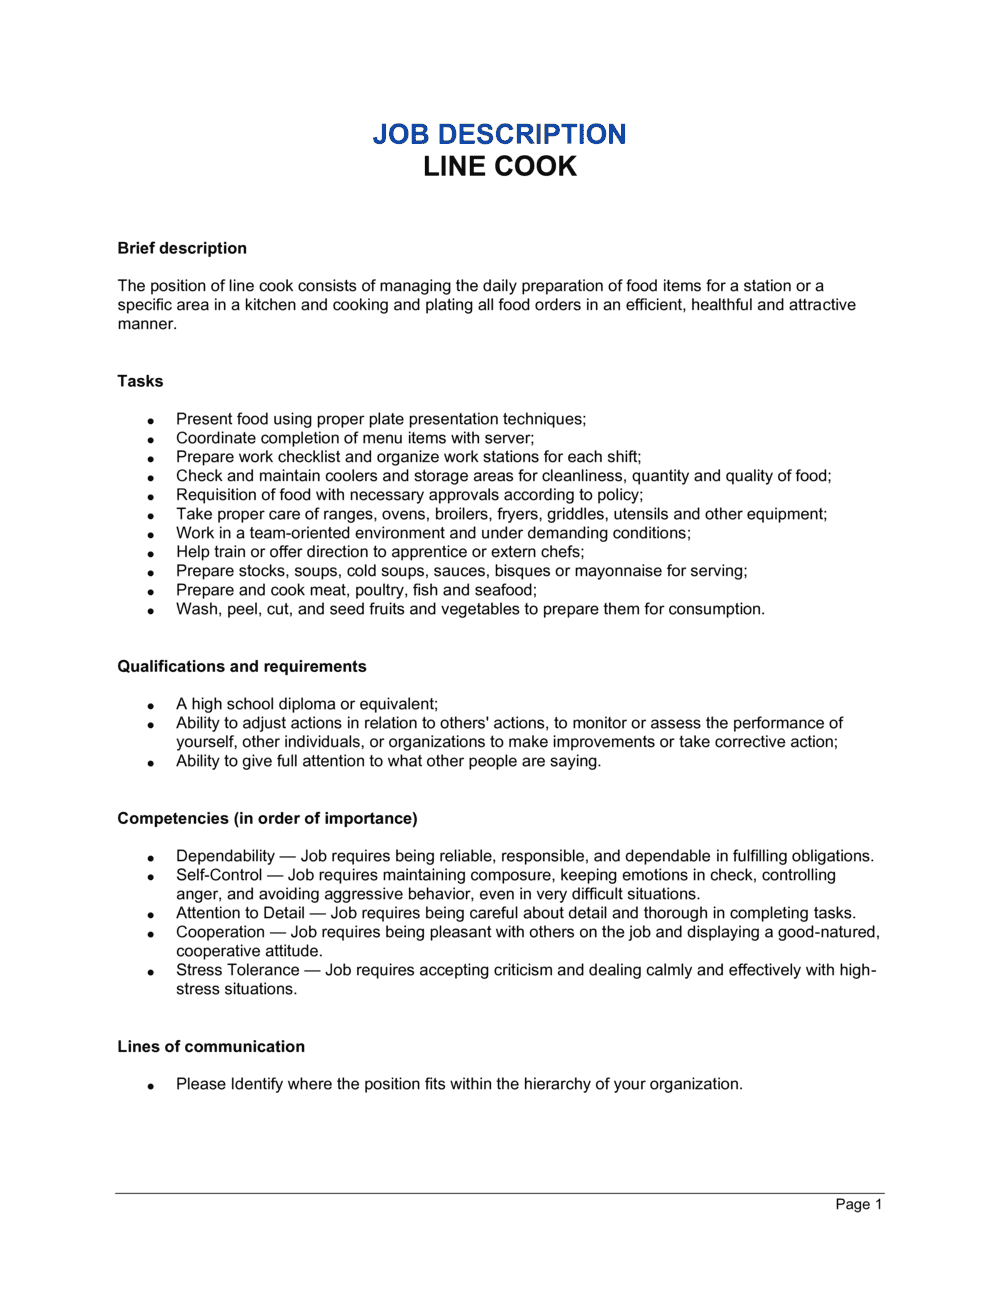 Business-in-a-Box's Line Cook Job Description Template